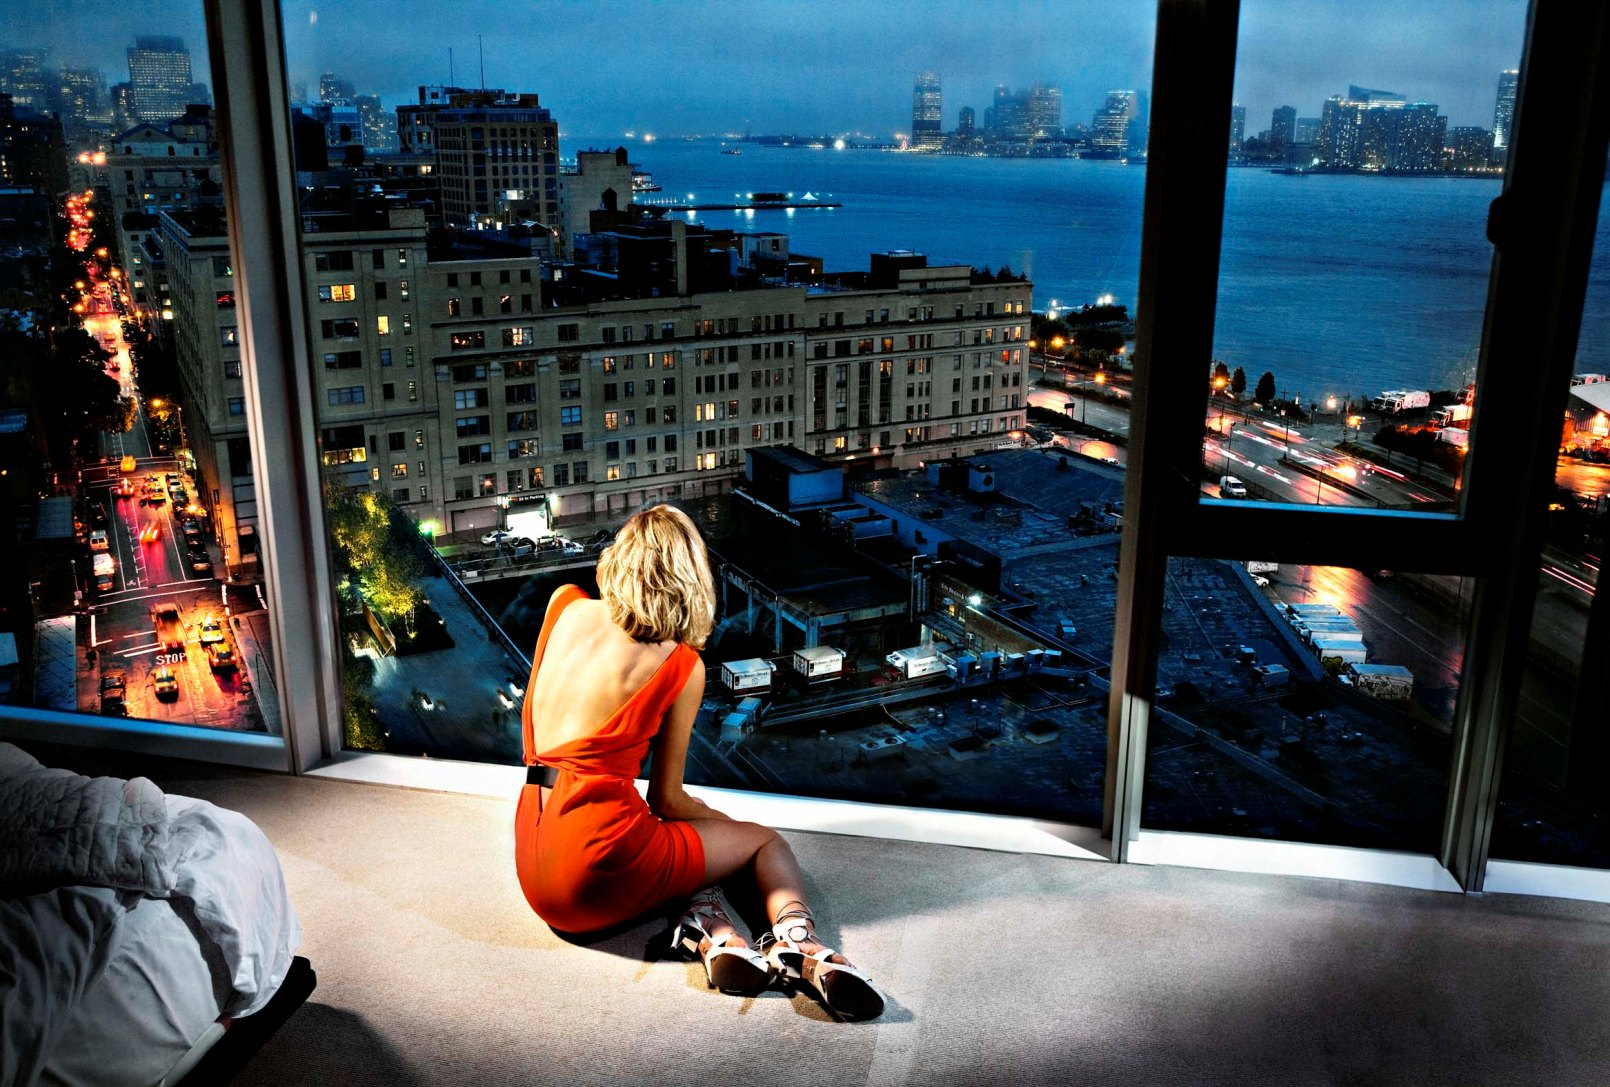 Collectors Edition — A Tribute to David Drebin's Most Iconic Works